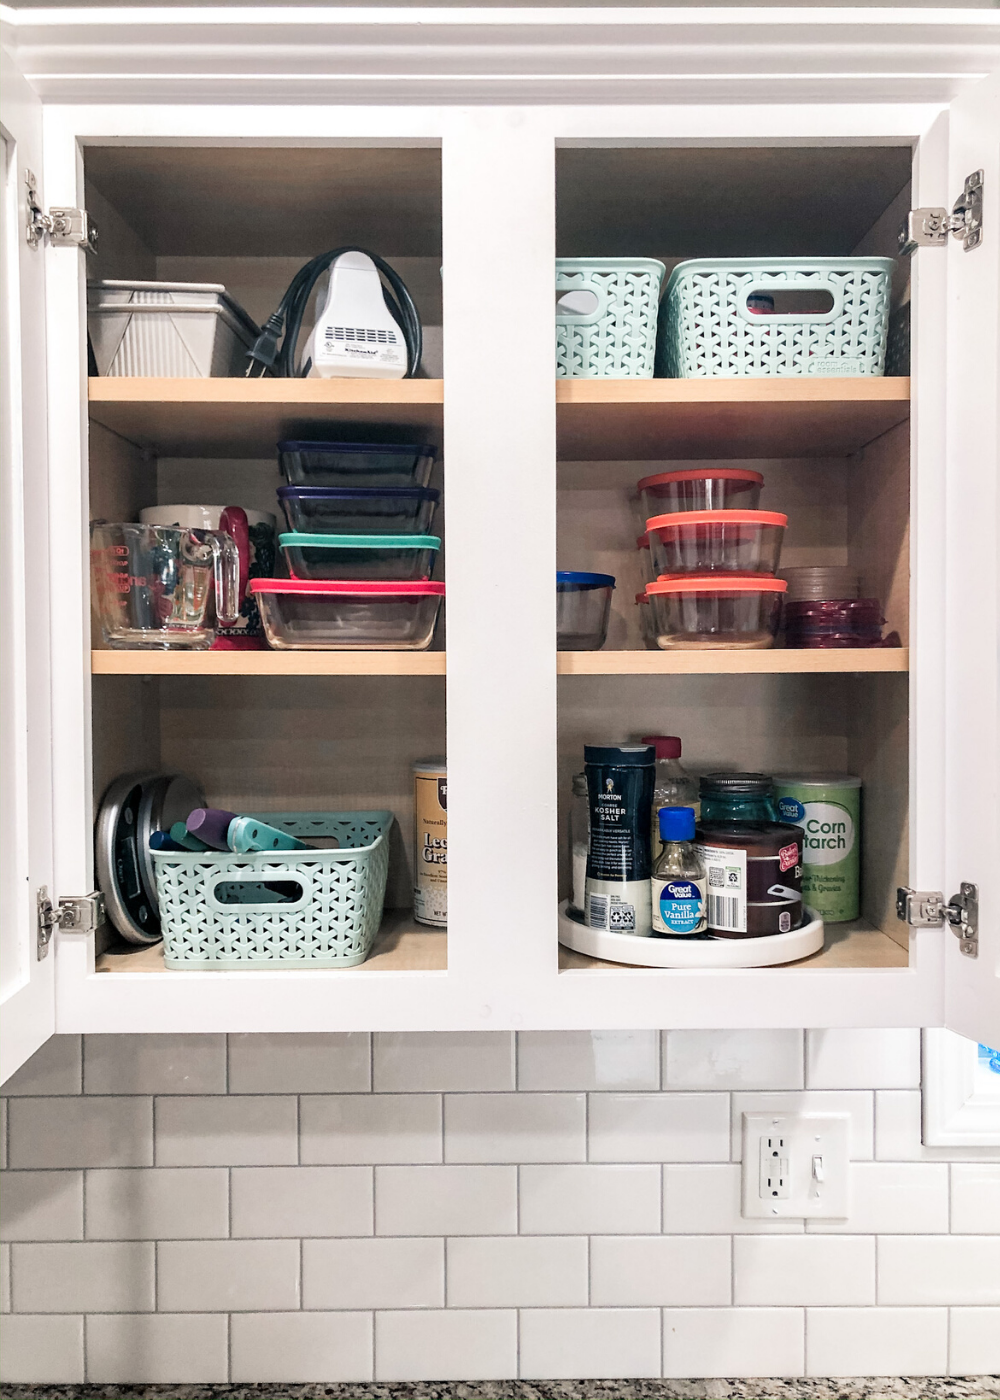 Organized Kitchen - Baking Cabinet